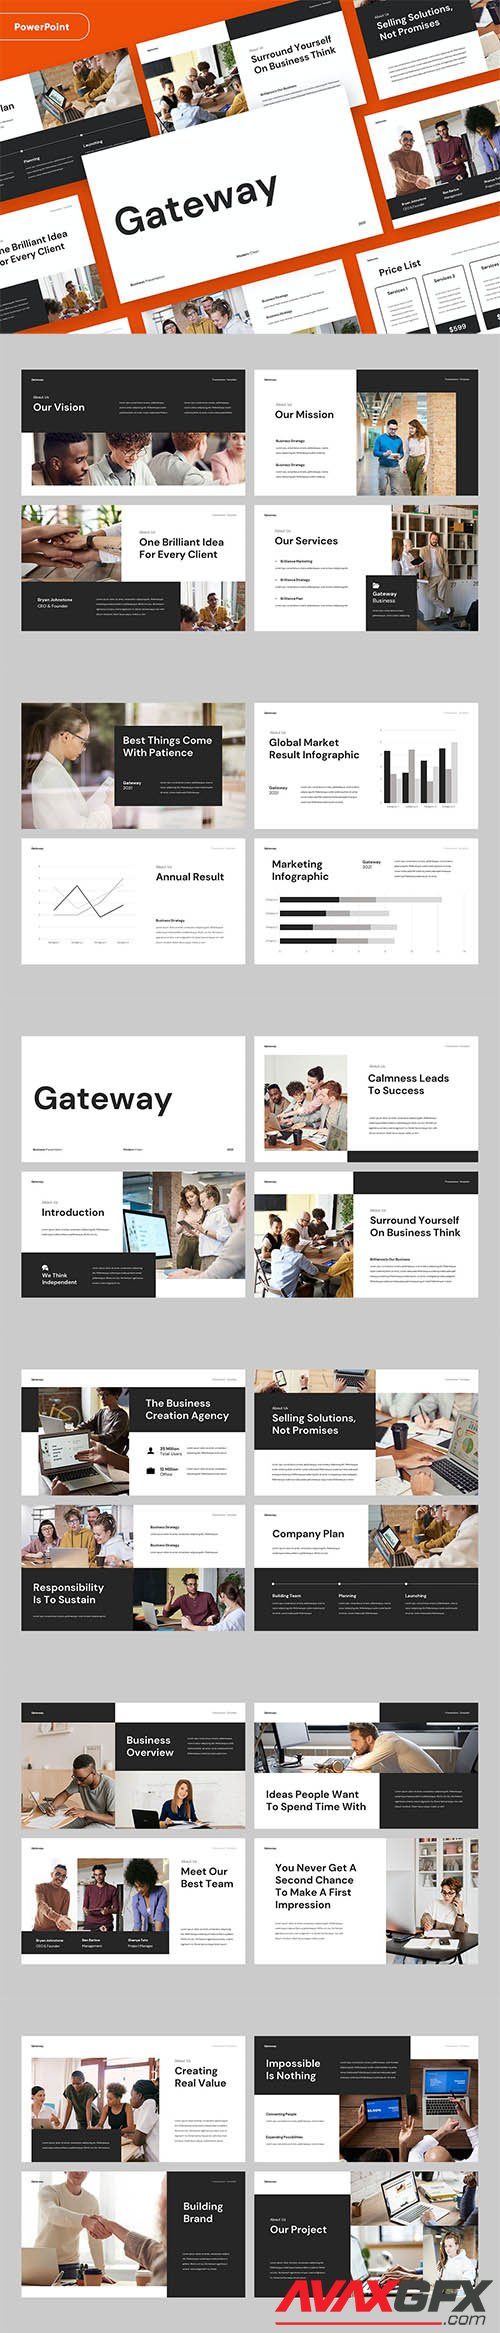 GATEWAY - Clean Business Pitch PowerPoint, Keynote and Google Slides Template